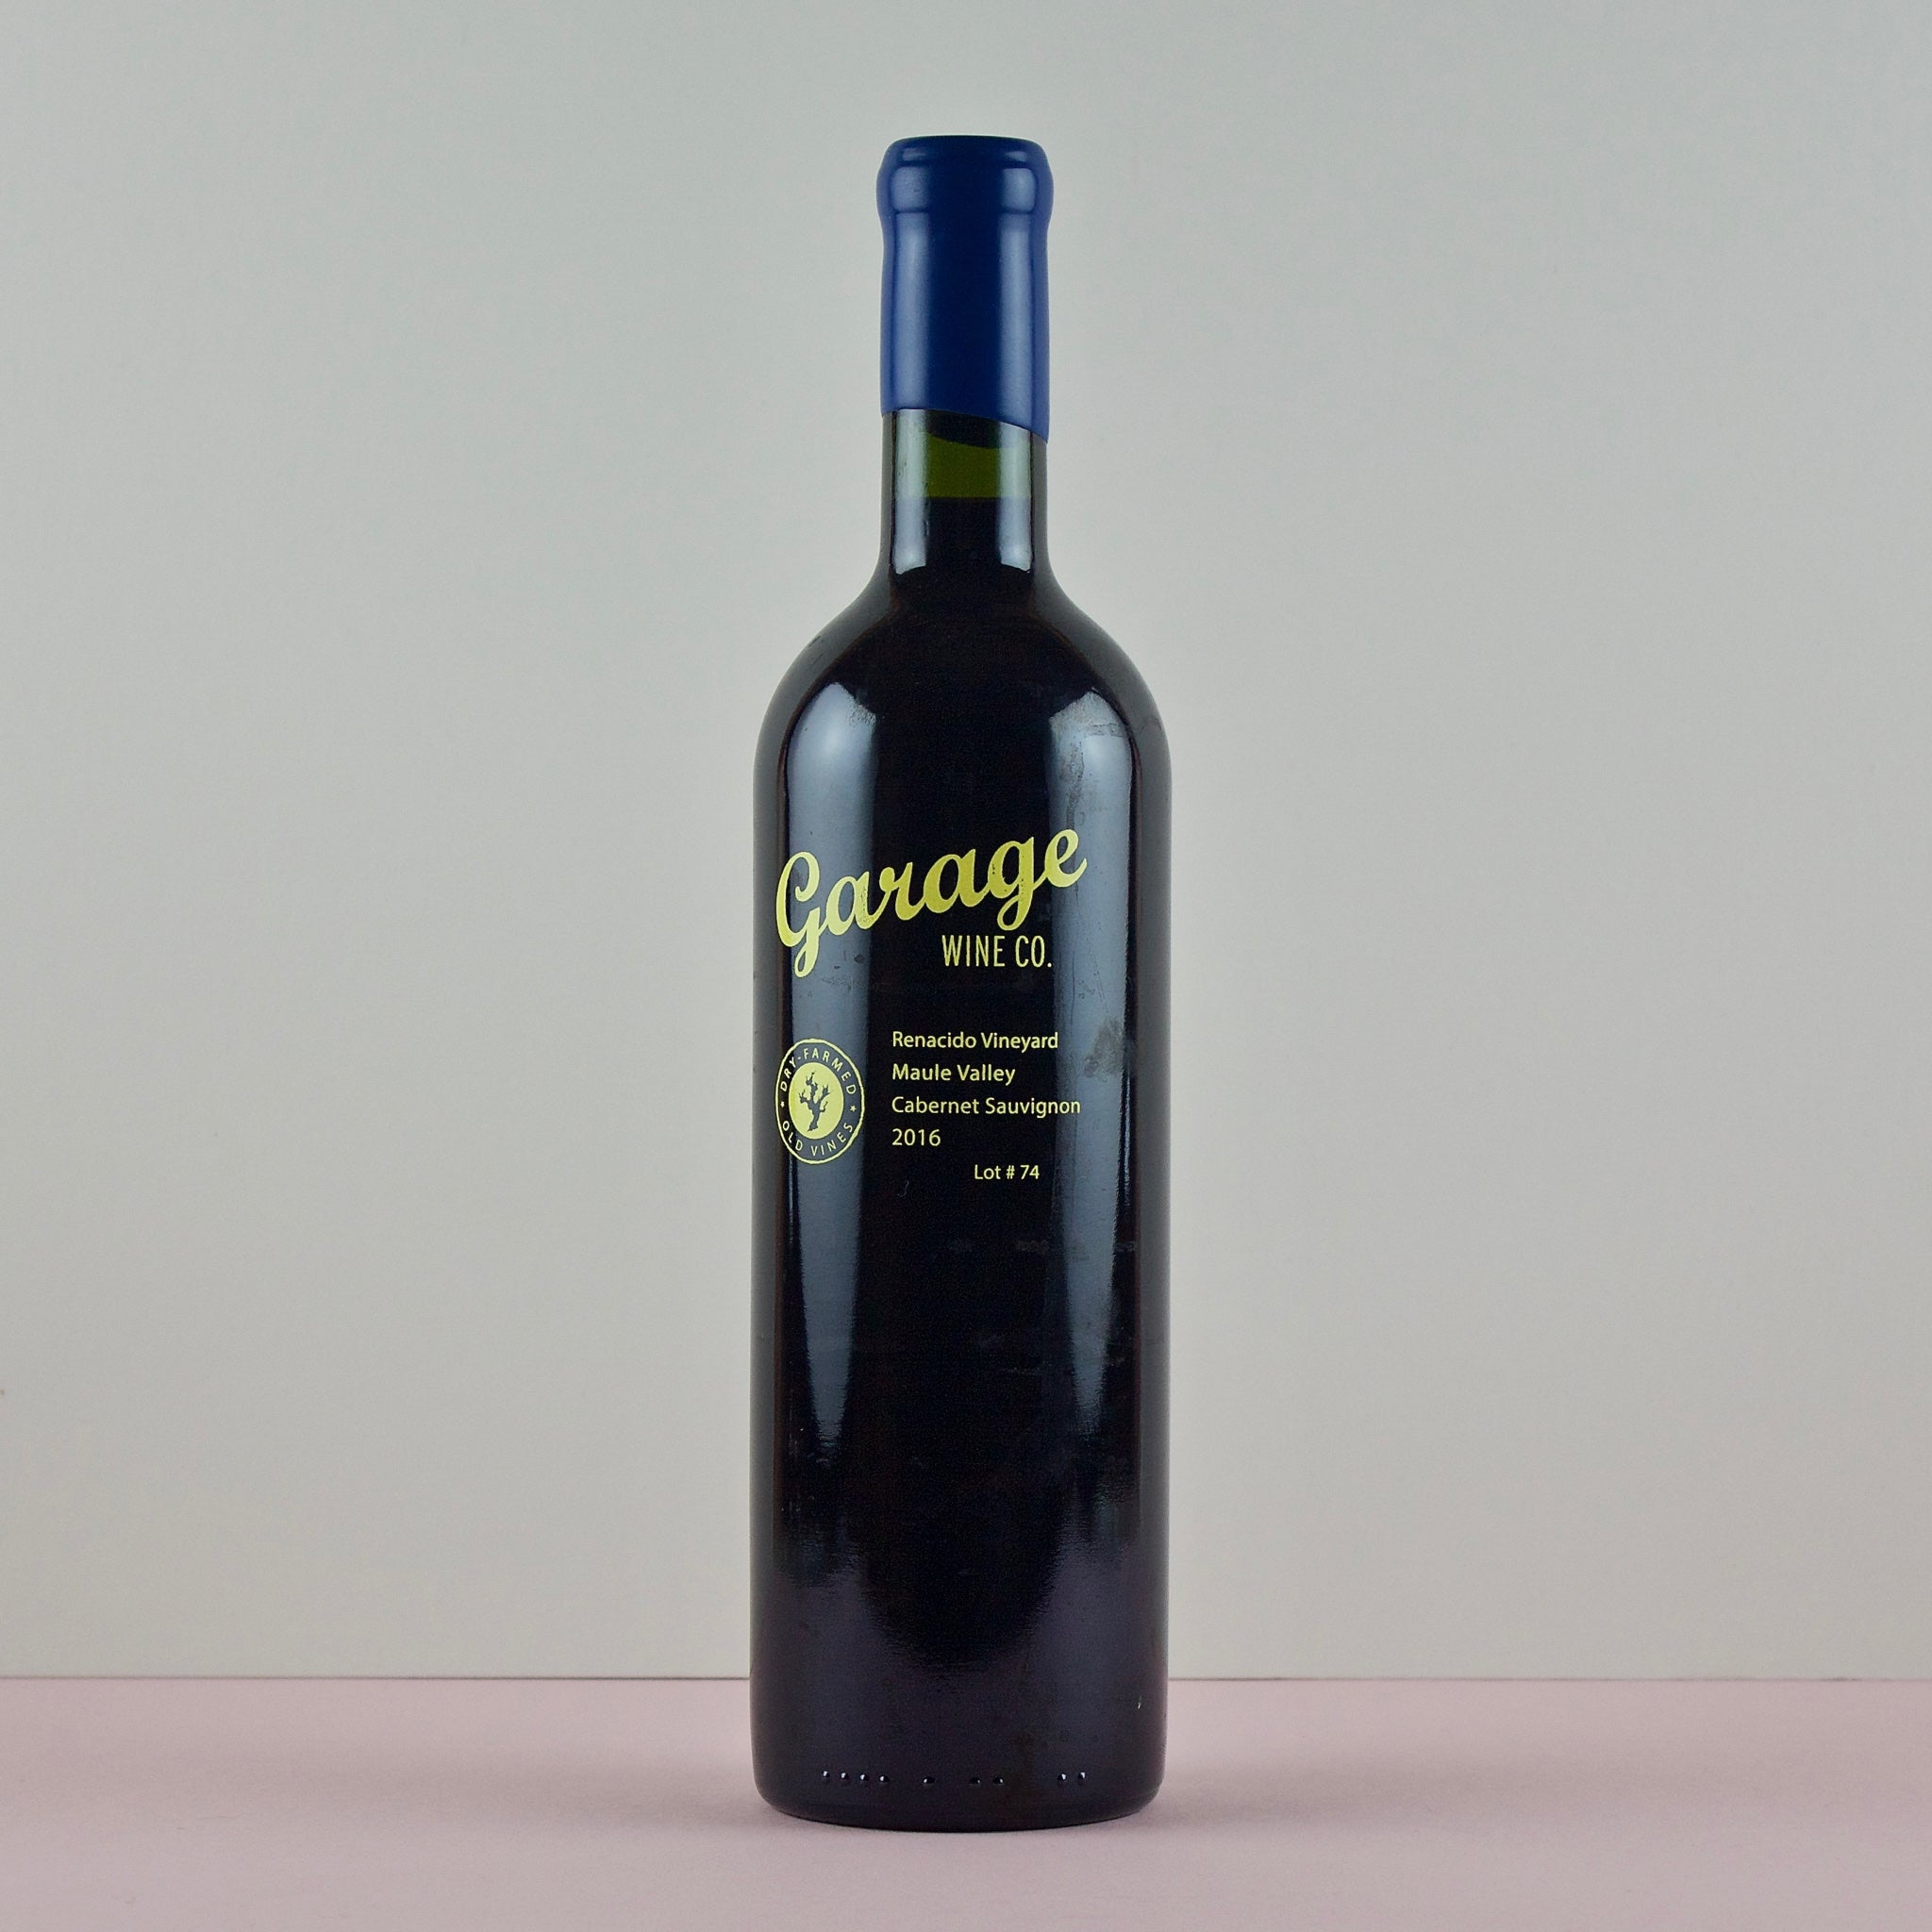 Cabernet Sauvignon, Garage Wine Co., Maule Valley, Chile